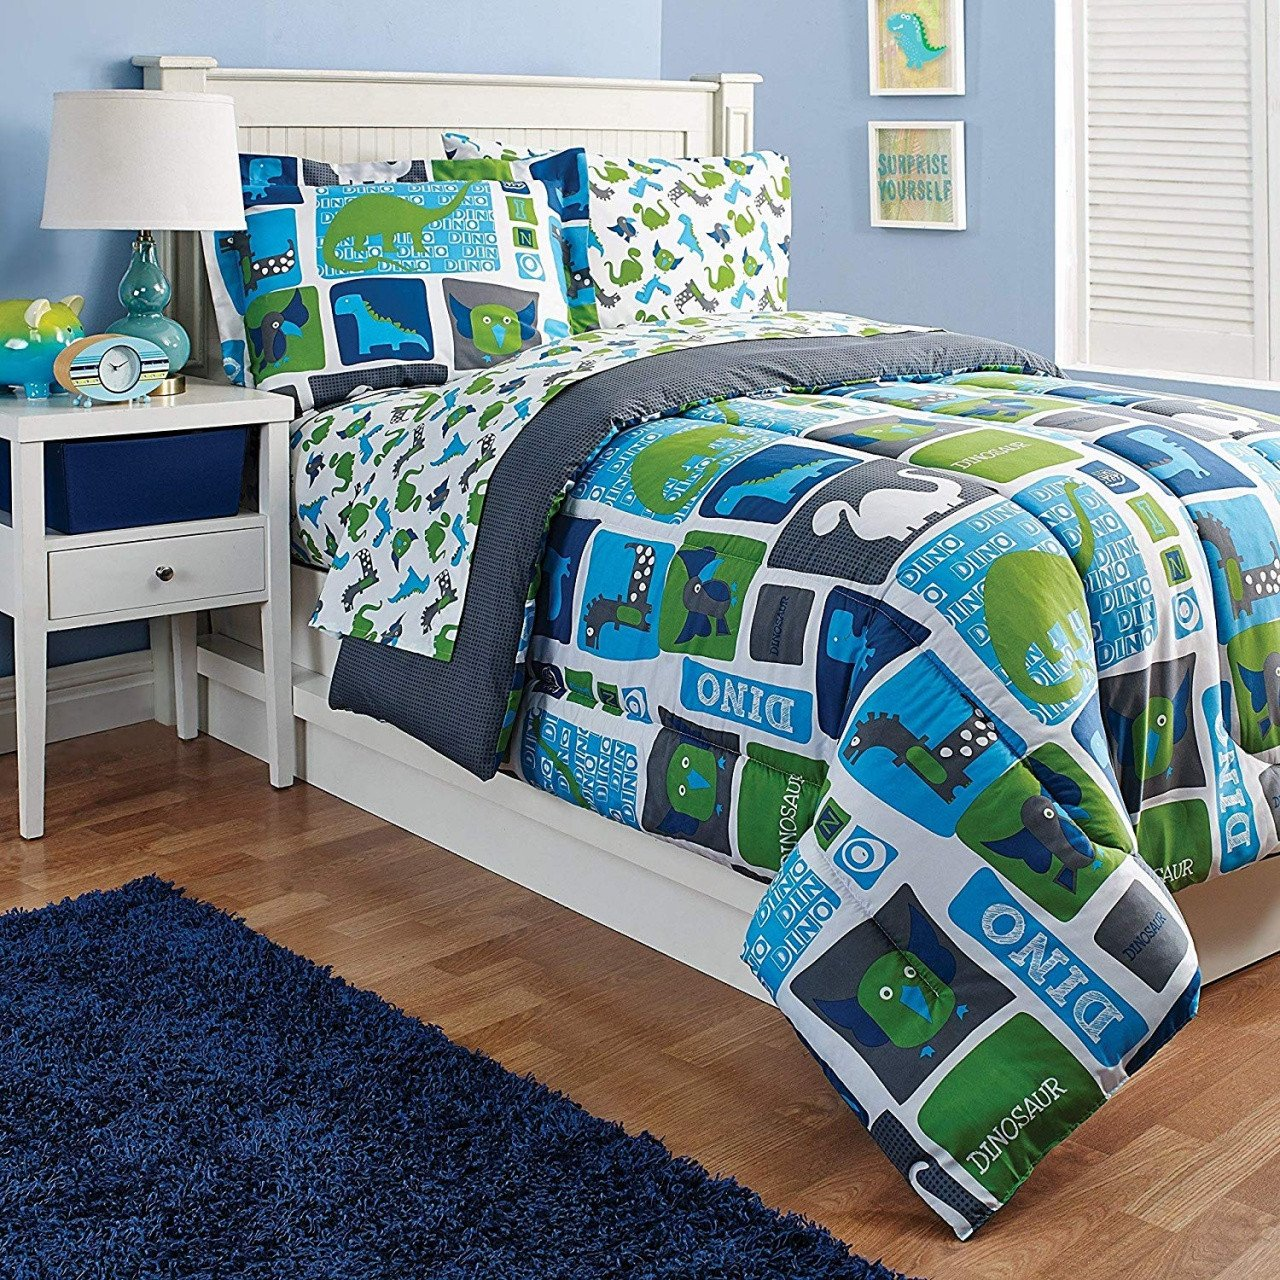 Childrens Bedroom Furniture Set Lovely Kids Bedroom Sets Under 500